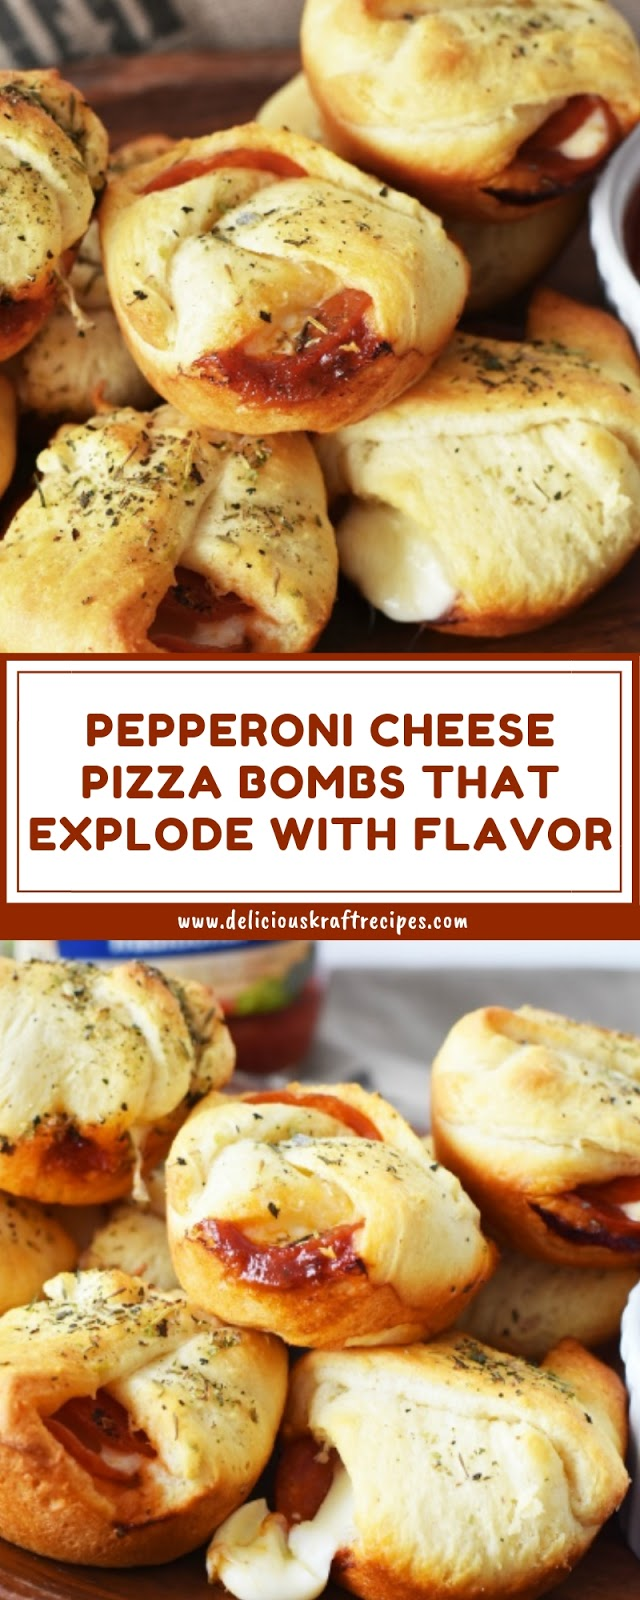 PEPPERONI CHEESE PIZZA BOMBS THAT EXPLODE WITH FLAVOR